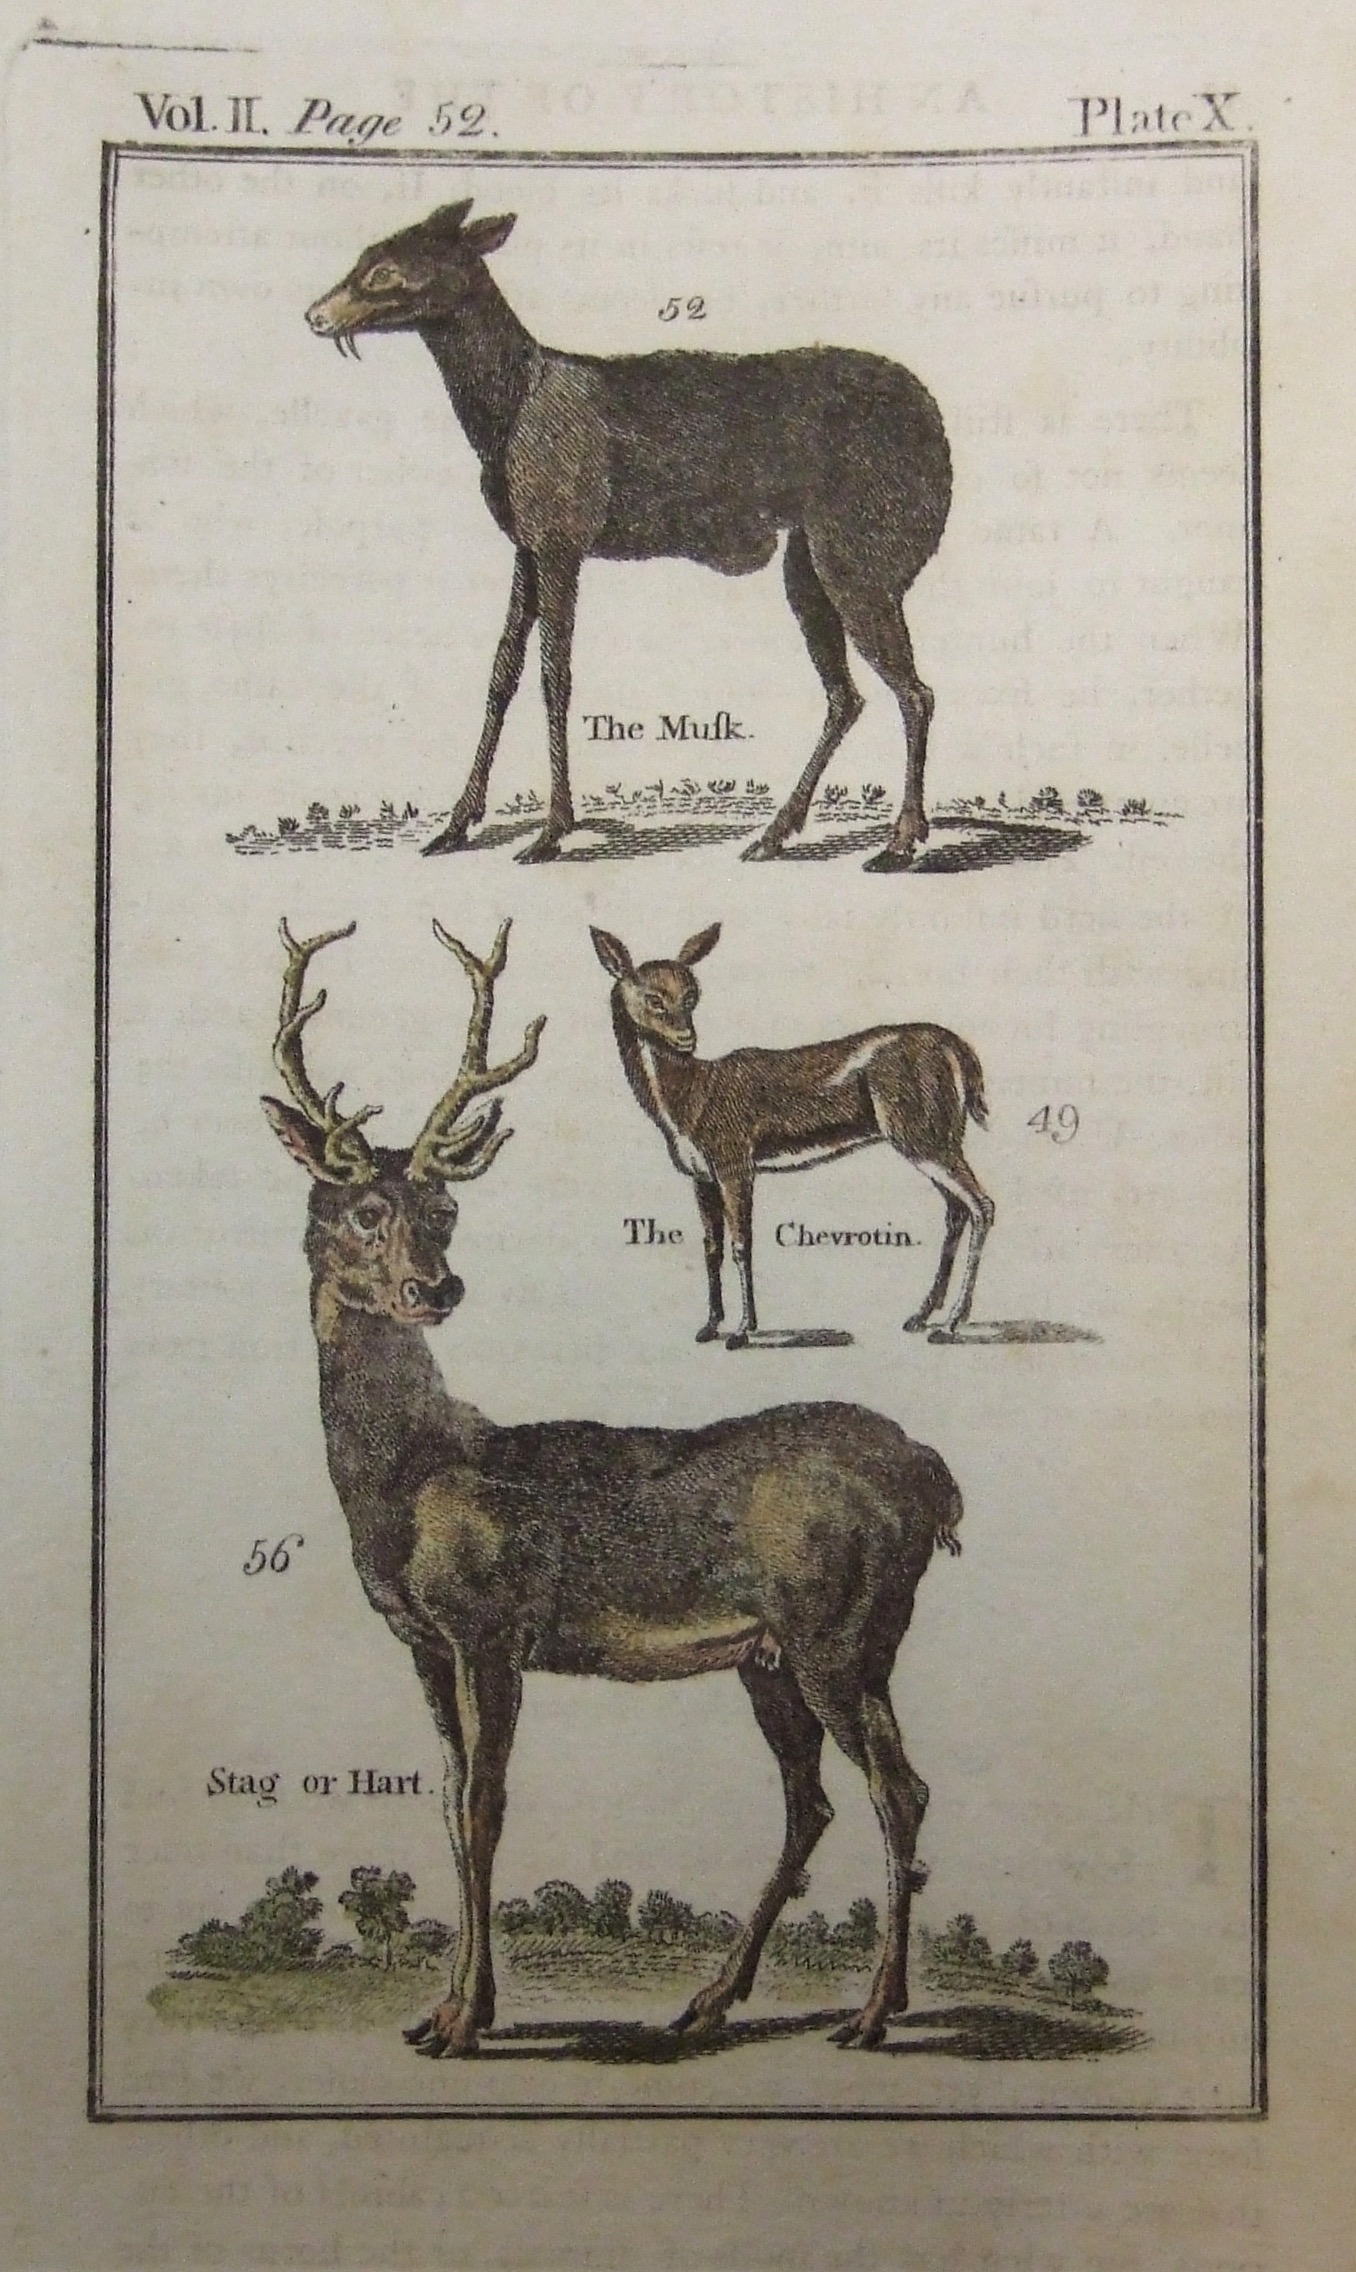 The Musk, The Chevrotin, Stag or Hart